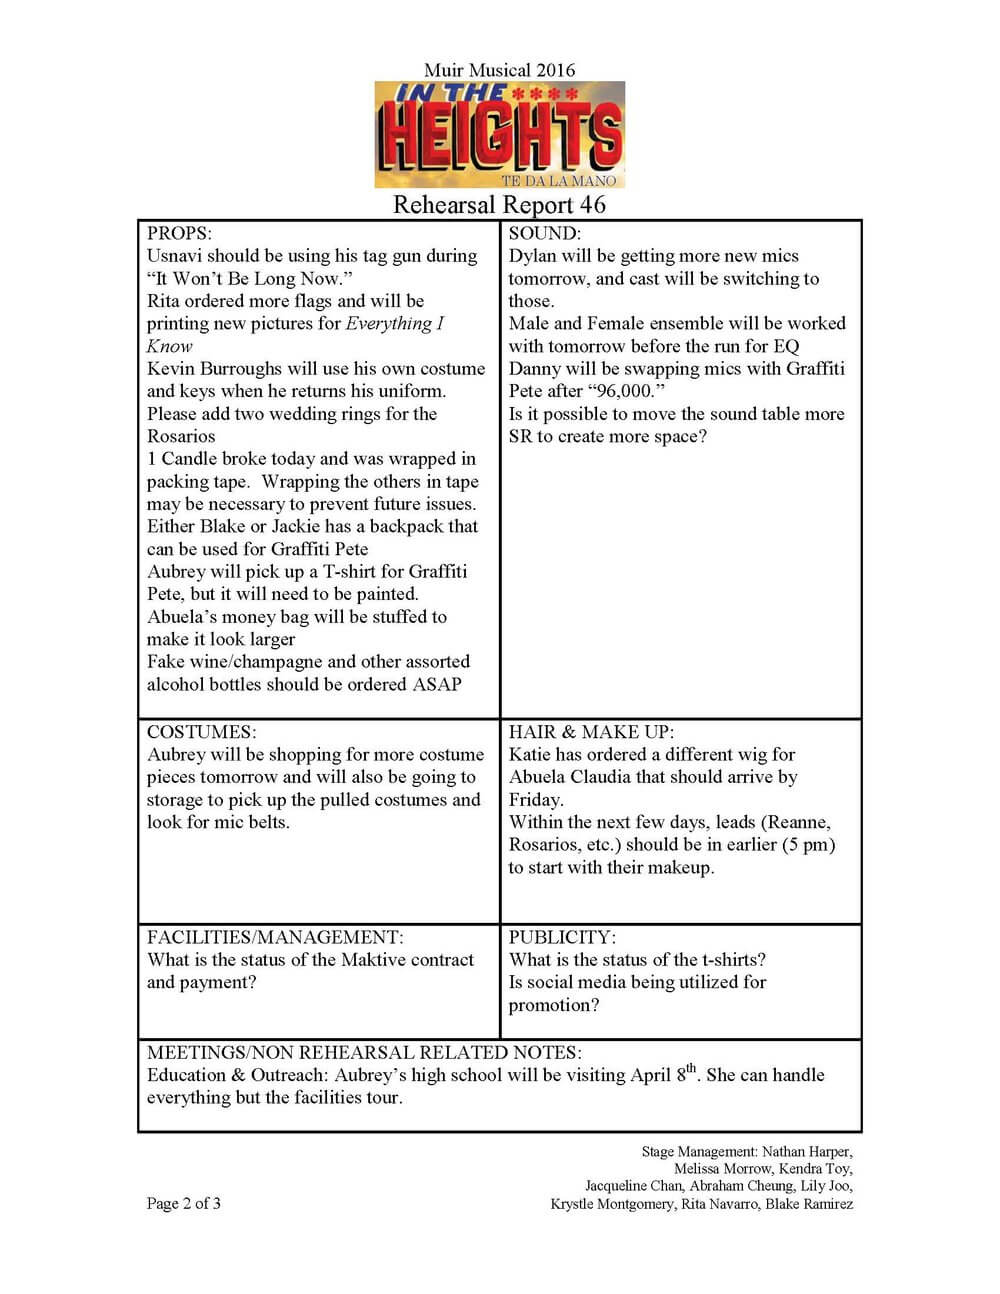 Paperwork Samples — Nathan D Harper Intended For Rehearsal Report Template